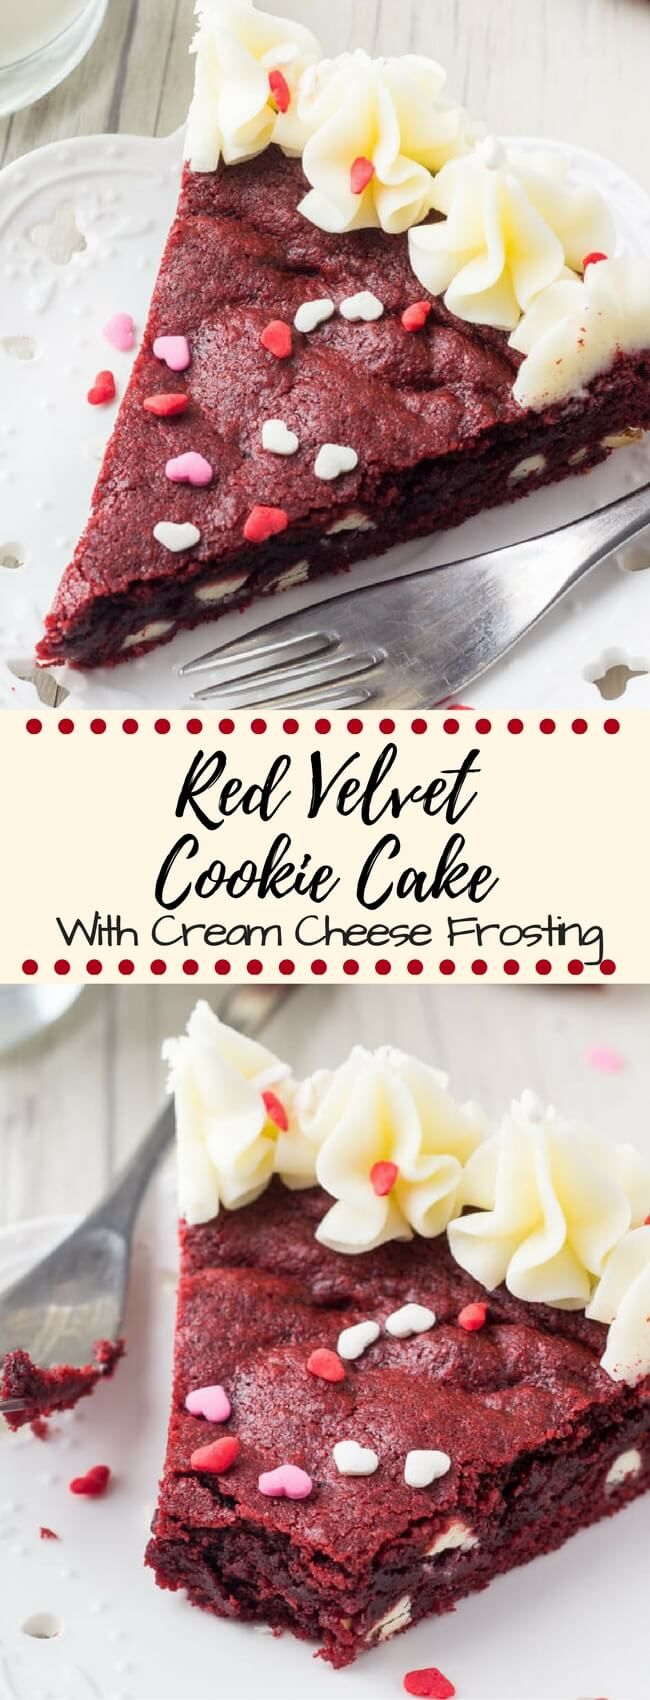 This Red Velvet Cookie Cake is soft & chewy, filled with white chocolate chips & decorated with cream cheese frosting. The ULTIMATE Red Velvet dessert